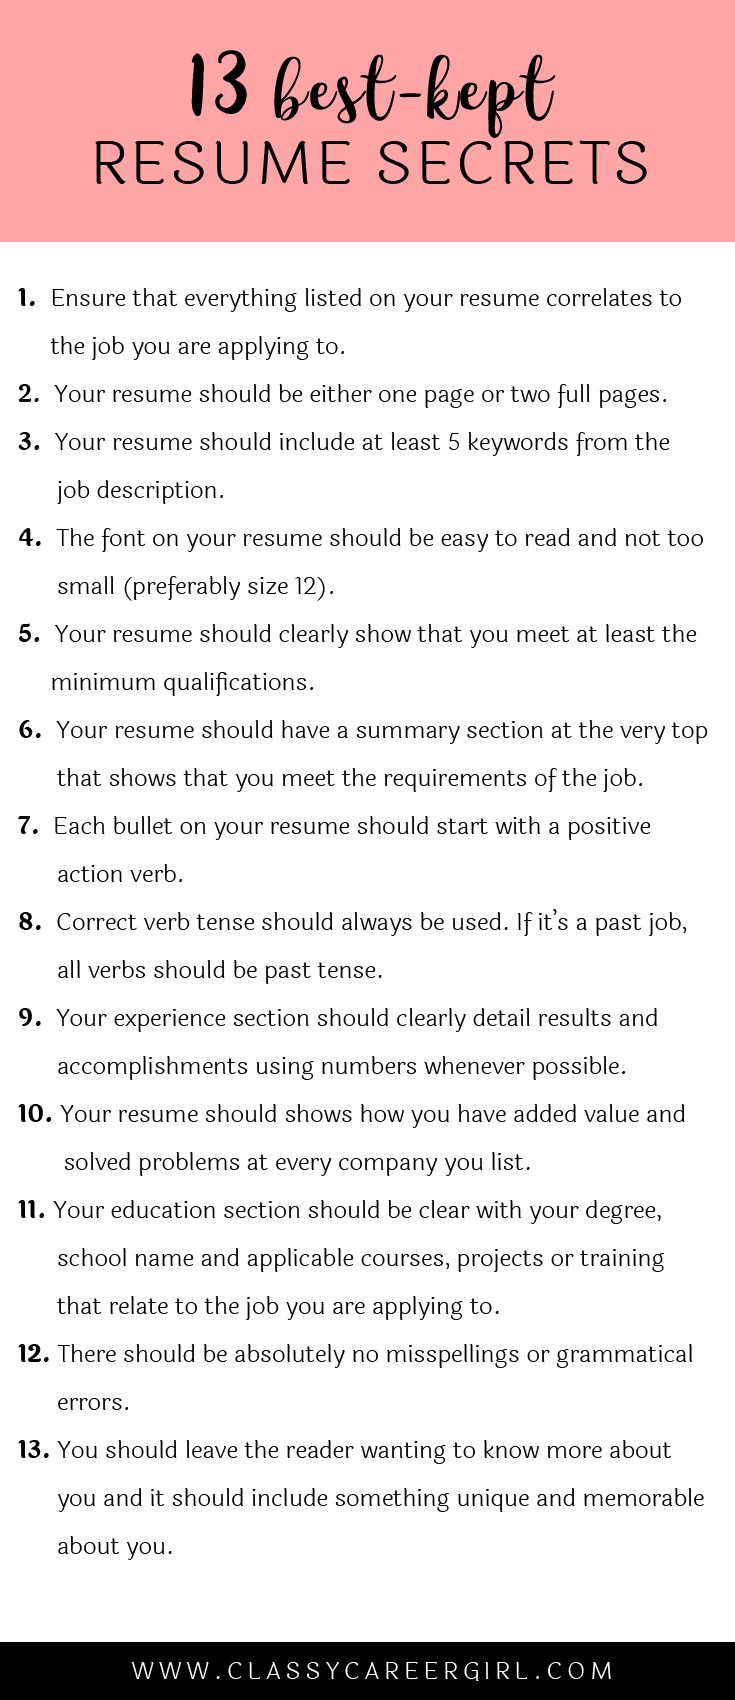 Picnictoimpeachus  Inspiring  Ideas About Resume On Pinterest  Cv Format Resume Cv And  With Fair Some Hiring Managers Will Toss Your Resume Out If You Dont Know These  With Agreeable Resume For Accounts Payable Also General Resume Summary In Addition Law School Resume Examples And How To Send Resume Email As Well As Online Resume Builder Reviews Additionally On Error Resume Next Vbscript From Pinterestcom With Picnictoimpeachus  Fair  Ideas About Resume On Pinterest  Cv Format Resume Cv And  With Agreeable Some Hiring Managers Will Toss Your Resume Out If You Dont Know These  And Inspiring Resume For Accounts Payable Also General Resume Summary In Addition Law School Resume Examples From Pinterestcom